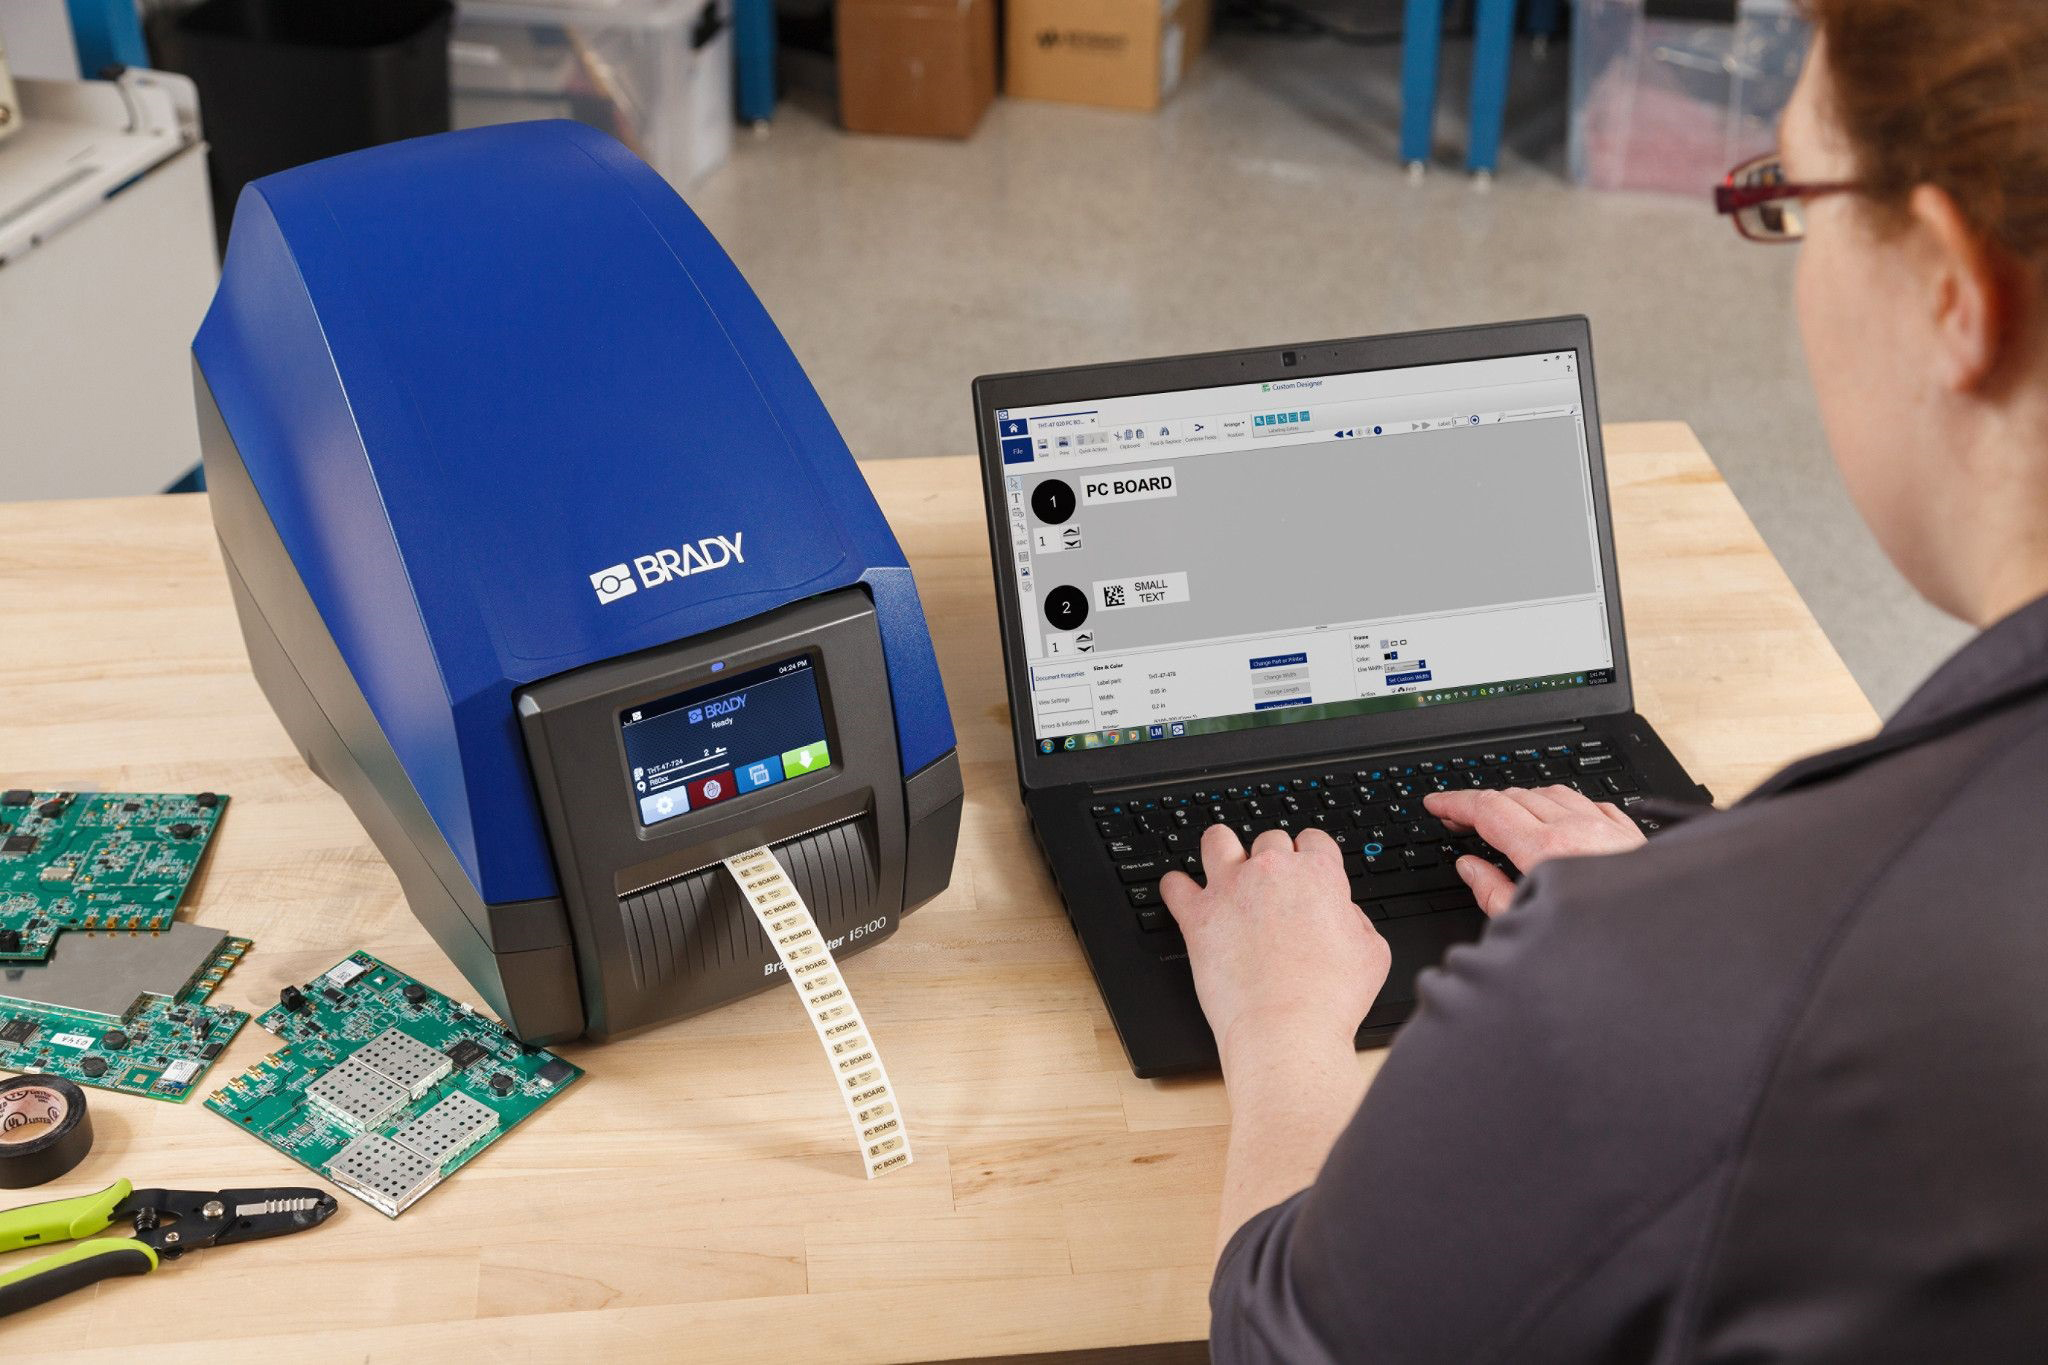 Smart, easy-to-use industrial label printer - EE Publishers